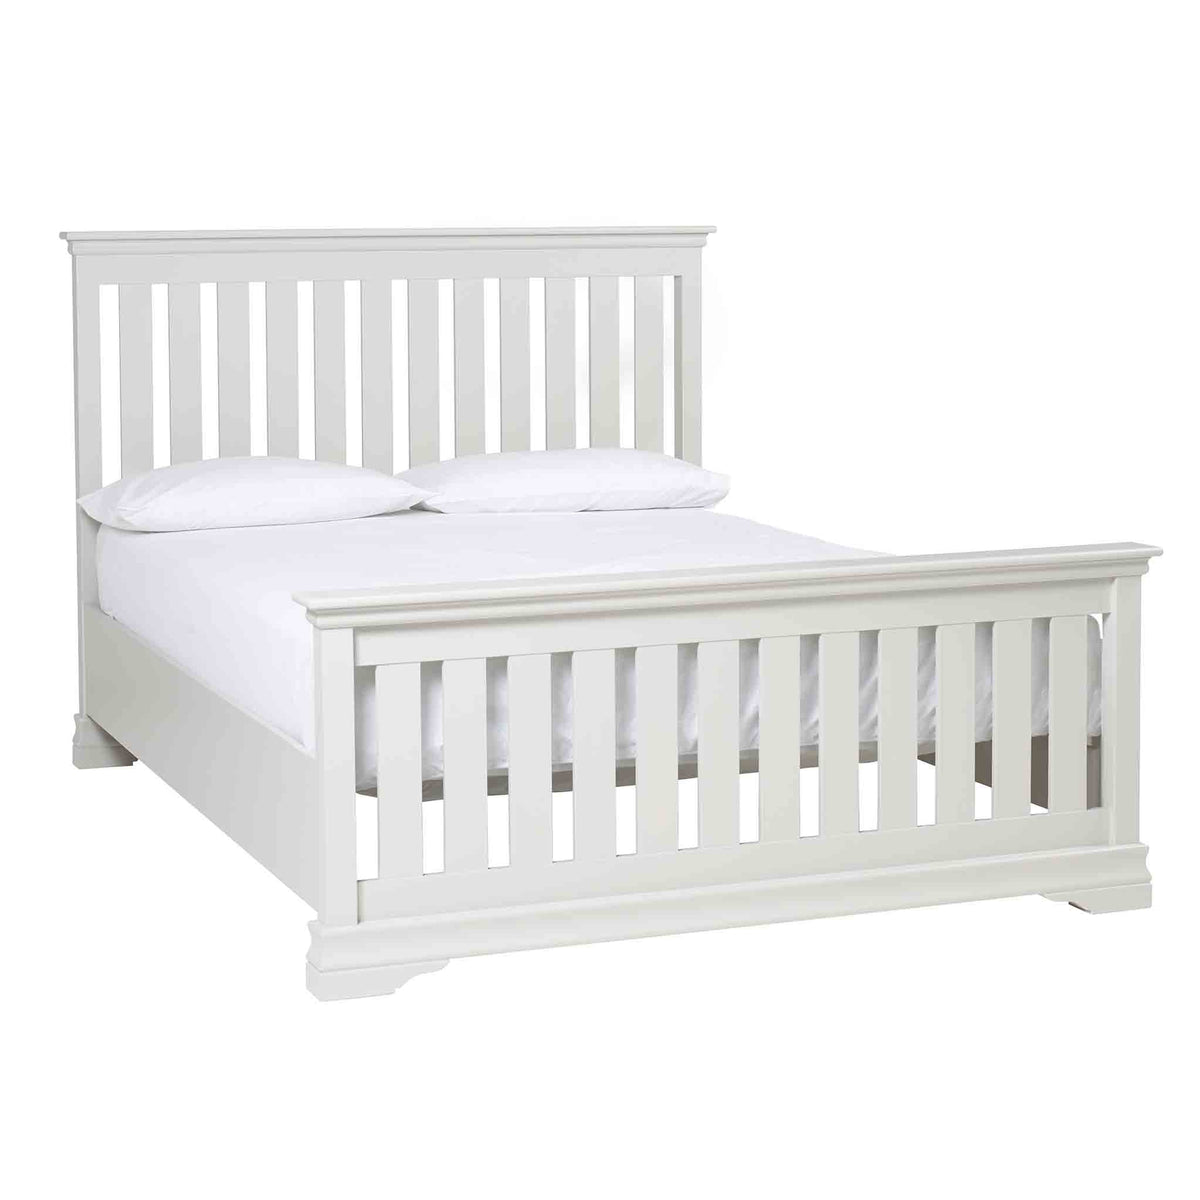 Melrose Cotton White King Size Slatted Bed Frame from Roseland Furniture